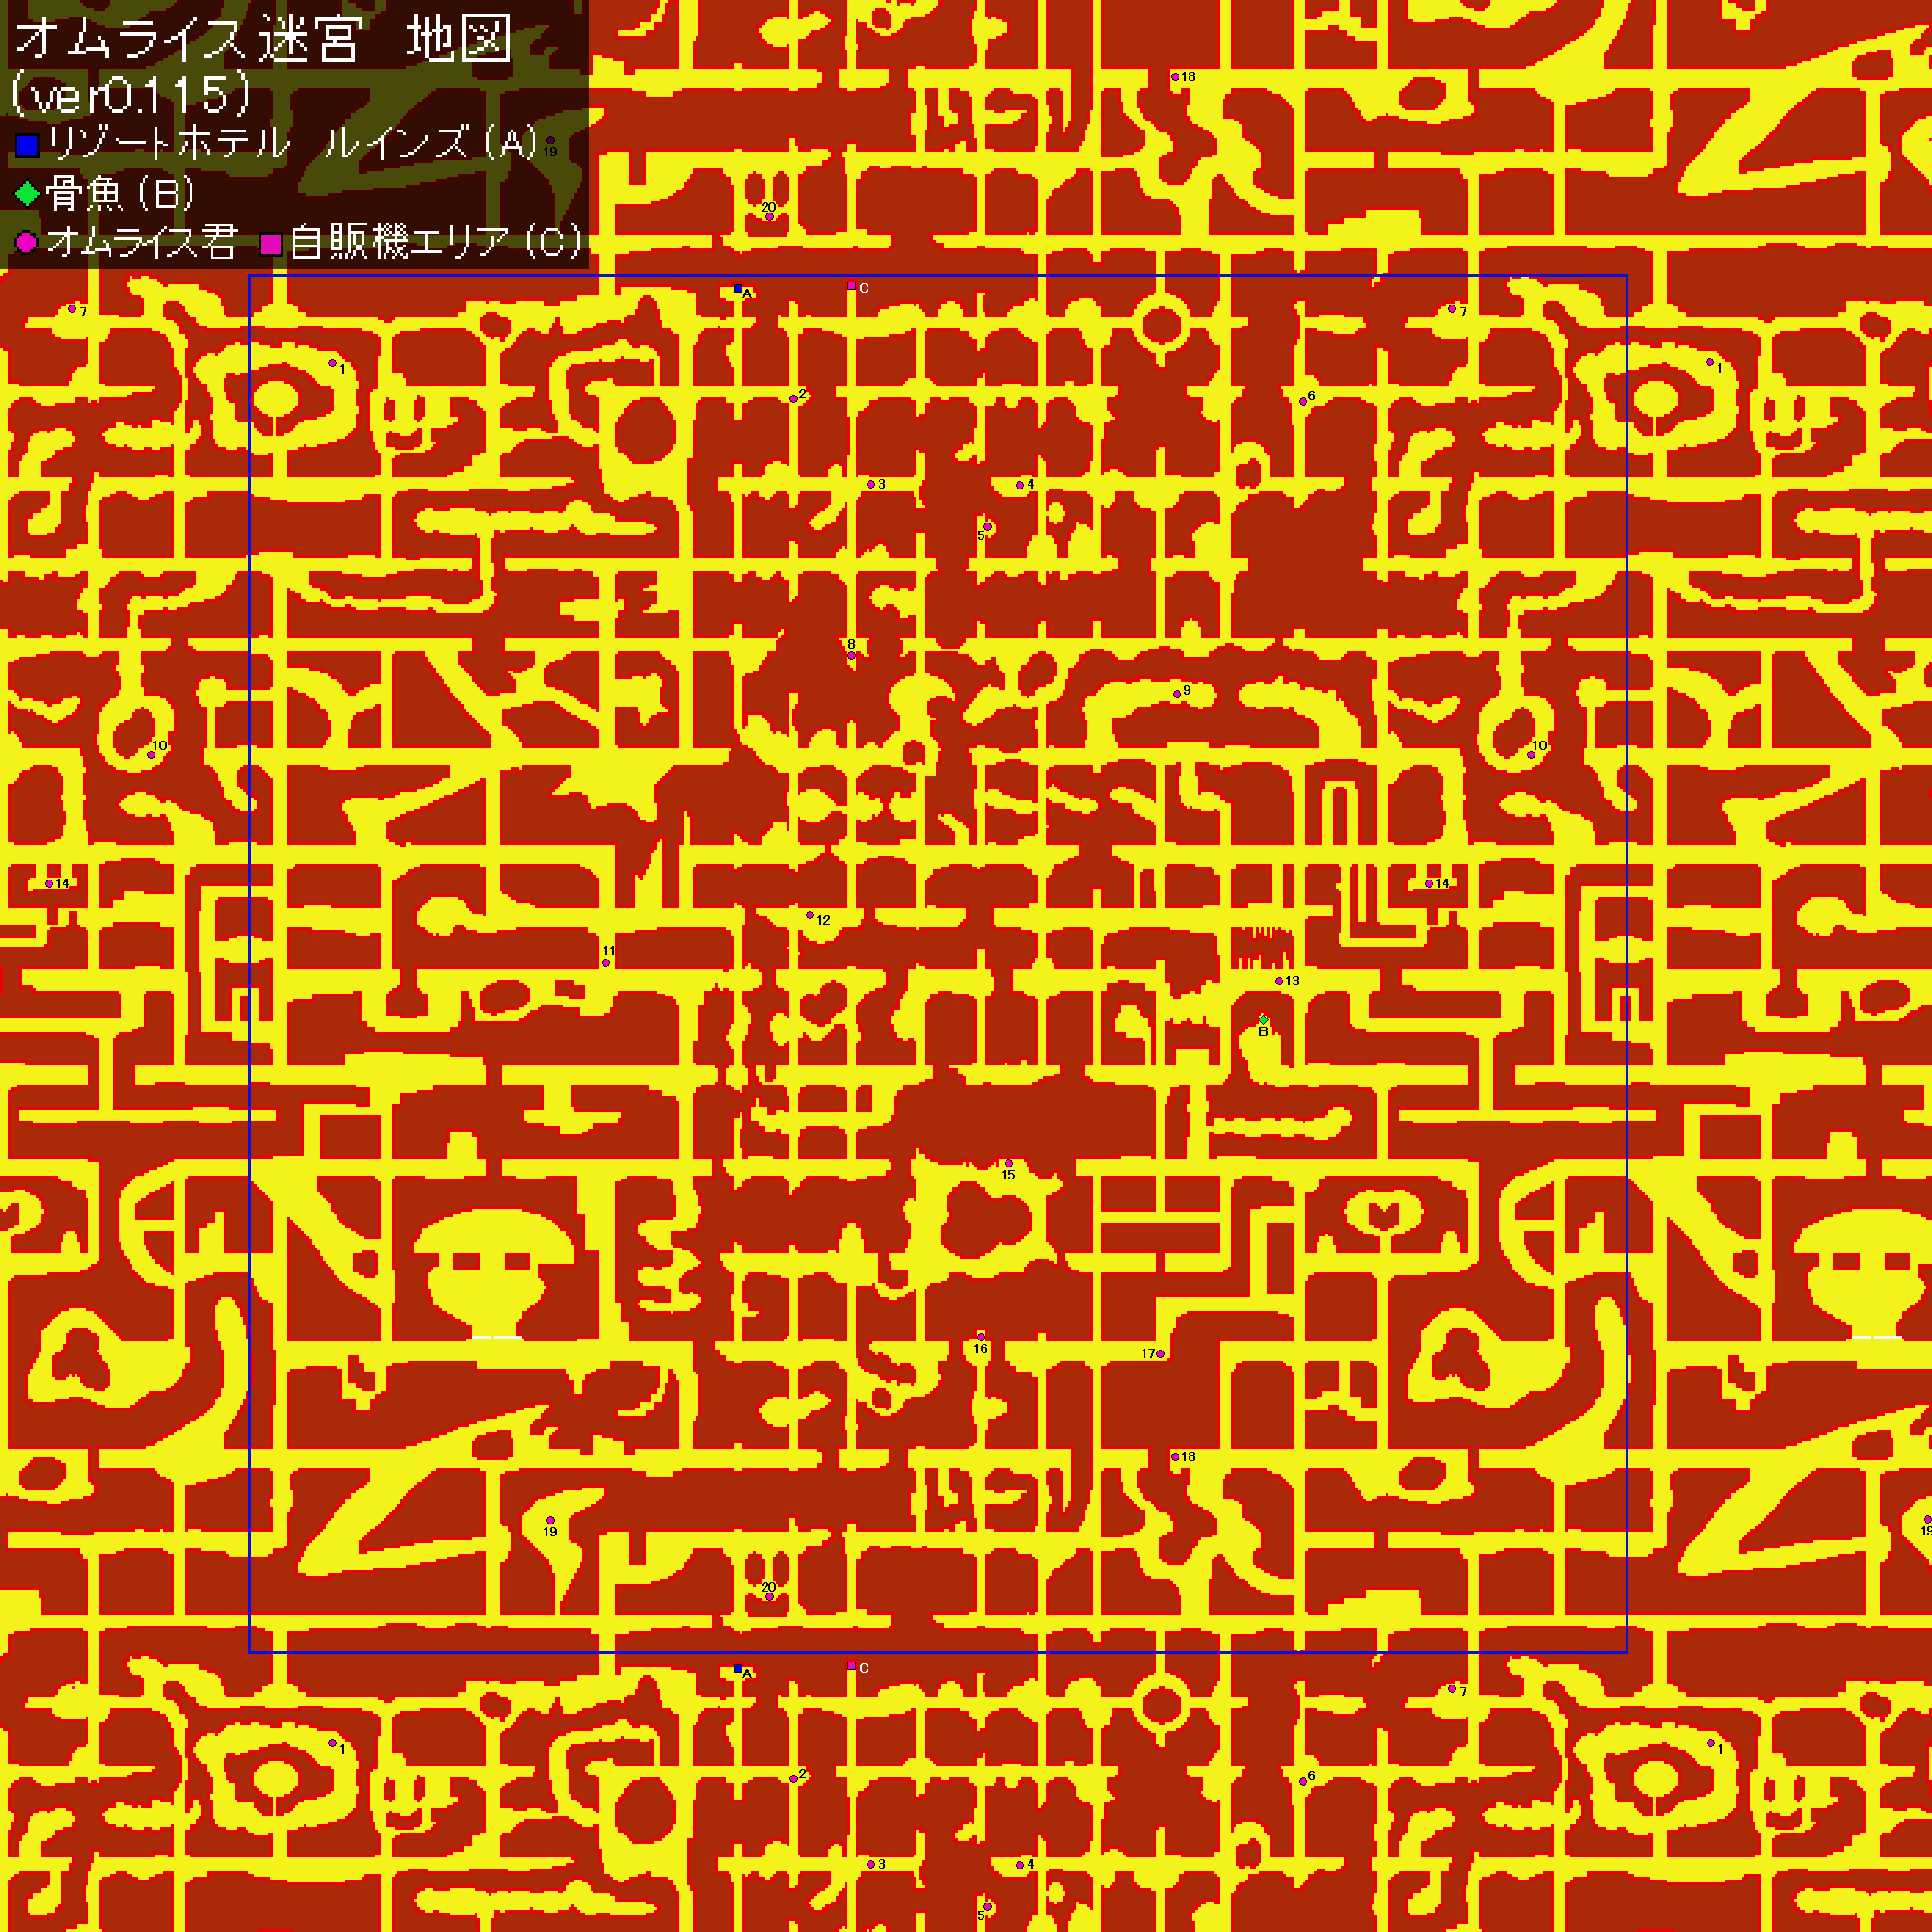 omeletrise-maze_map0115.png